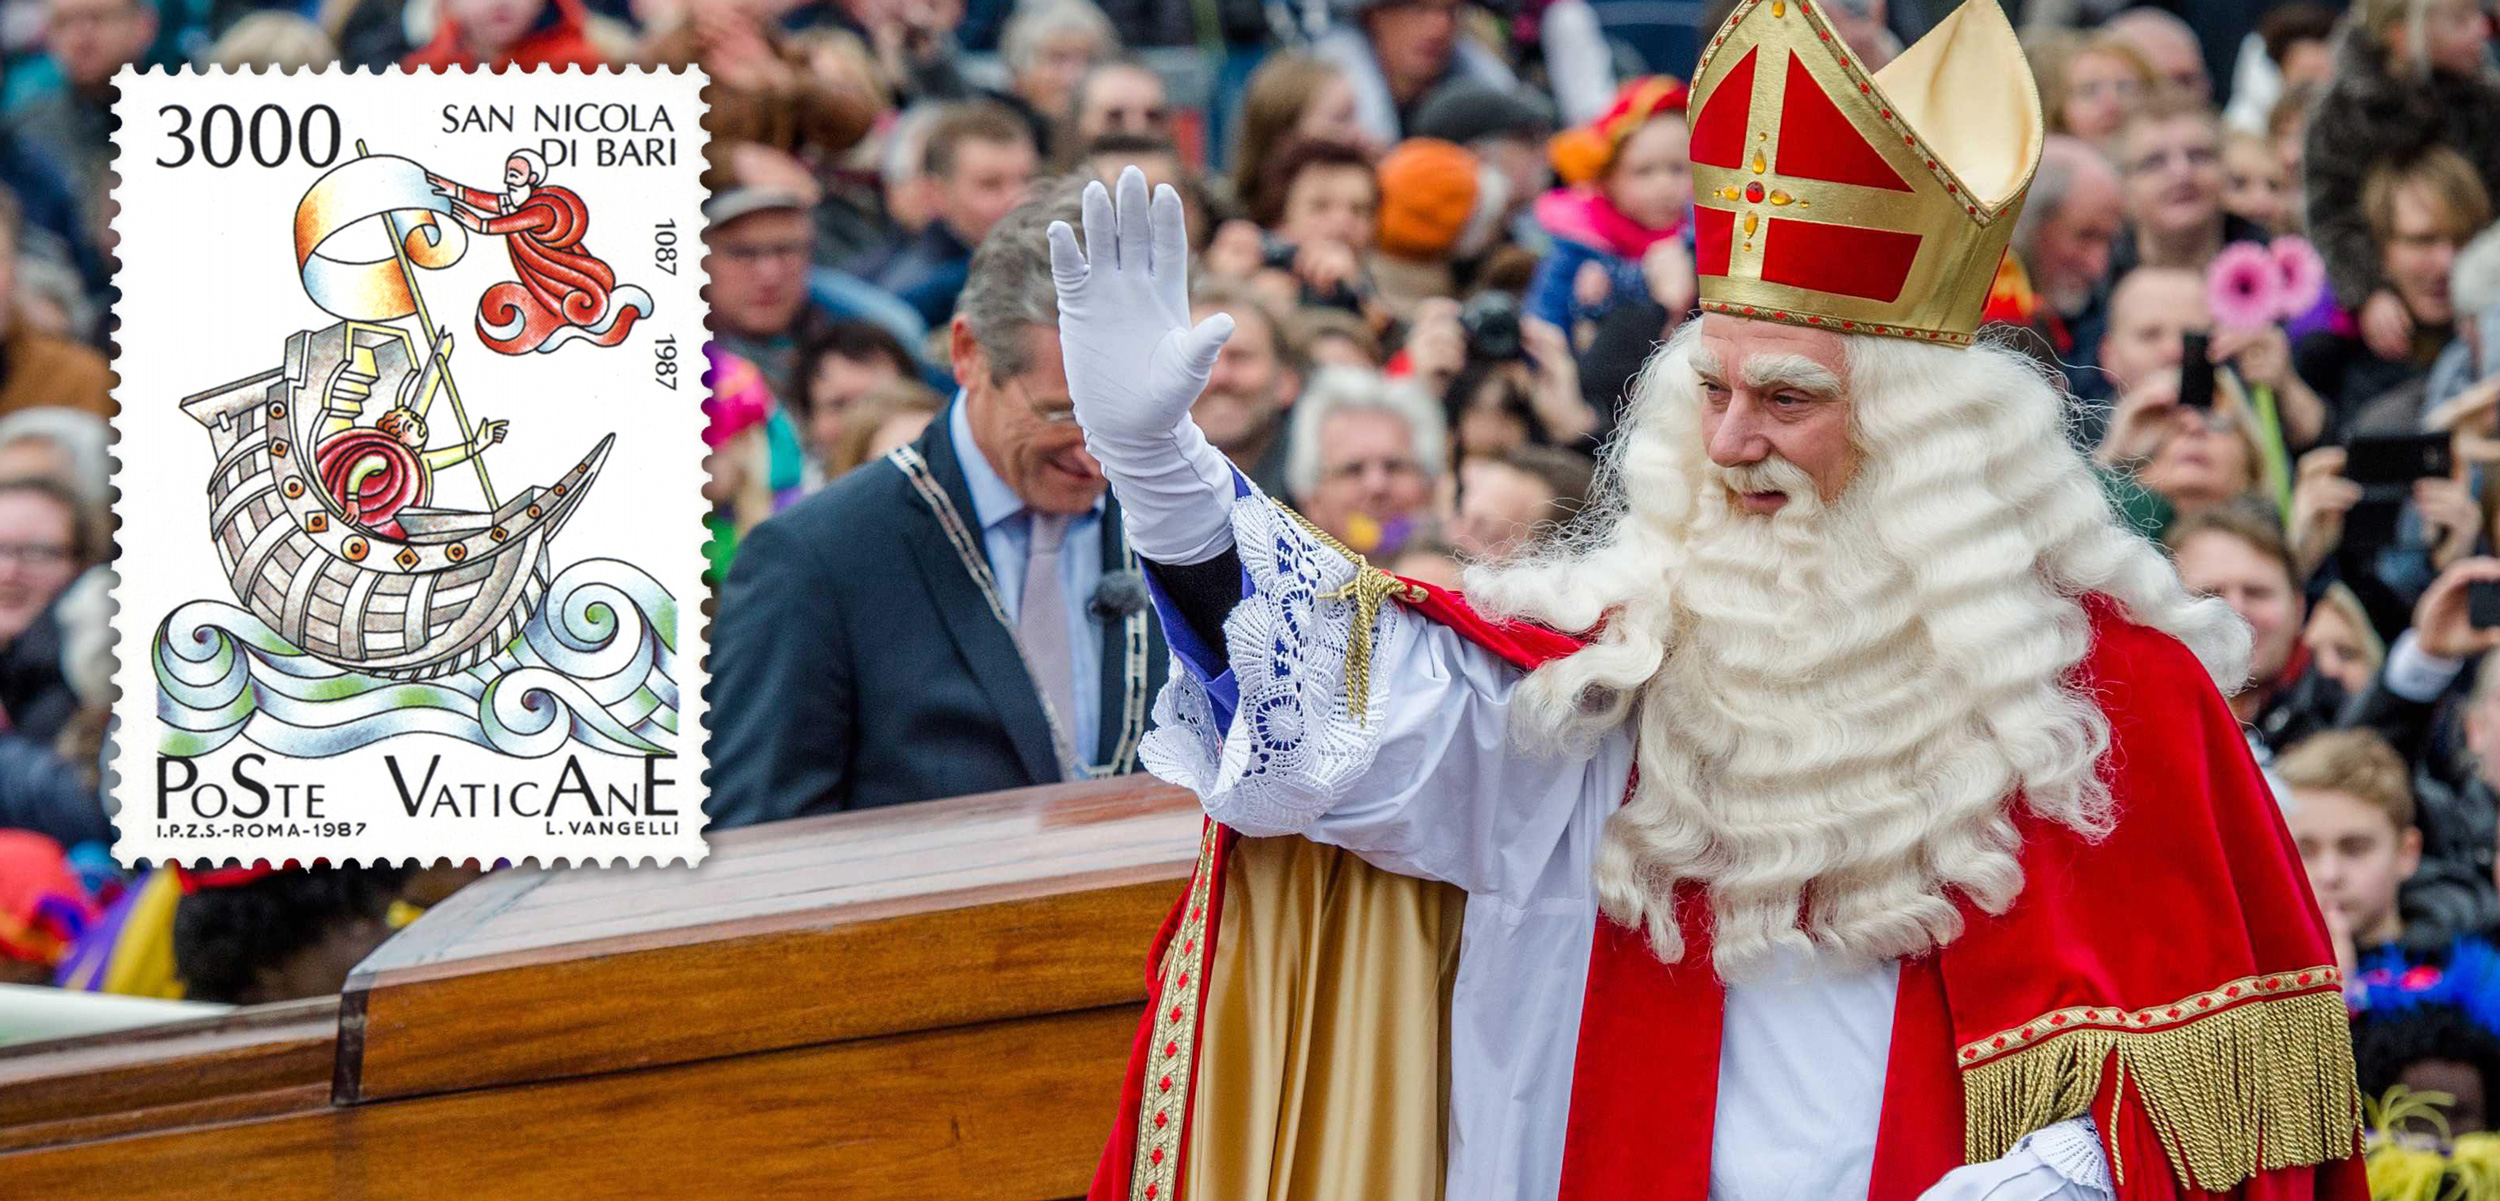 St. Nicholas has a little-known coastal connection: he has been the patron saint of sailors for centuries. Background photo by epa european pressphoto agency b.v./Alamy Stock Photo